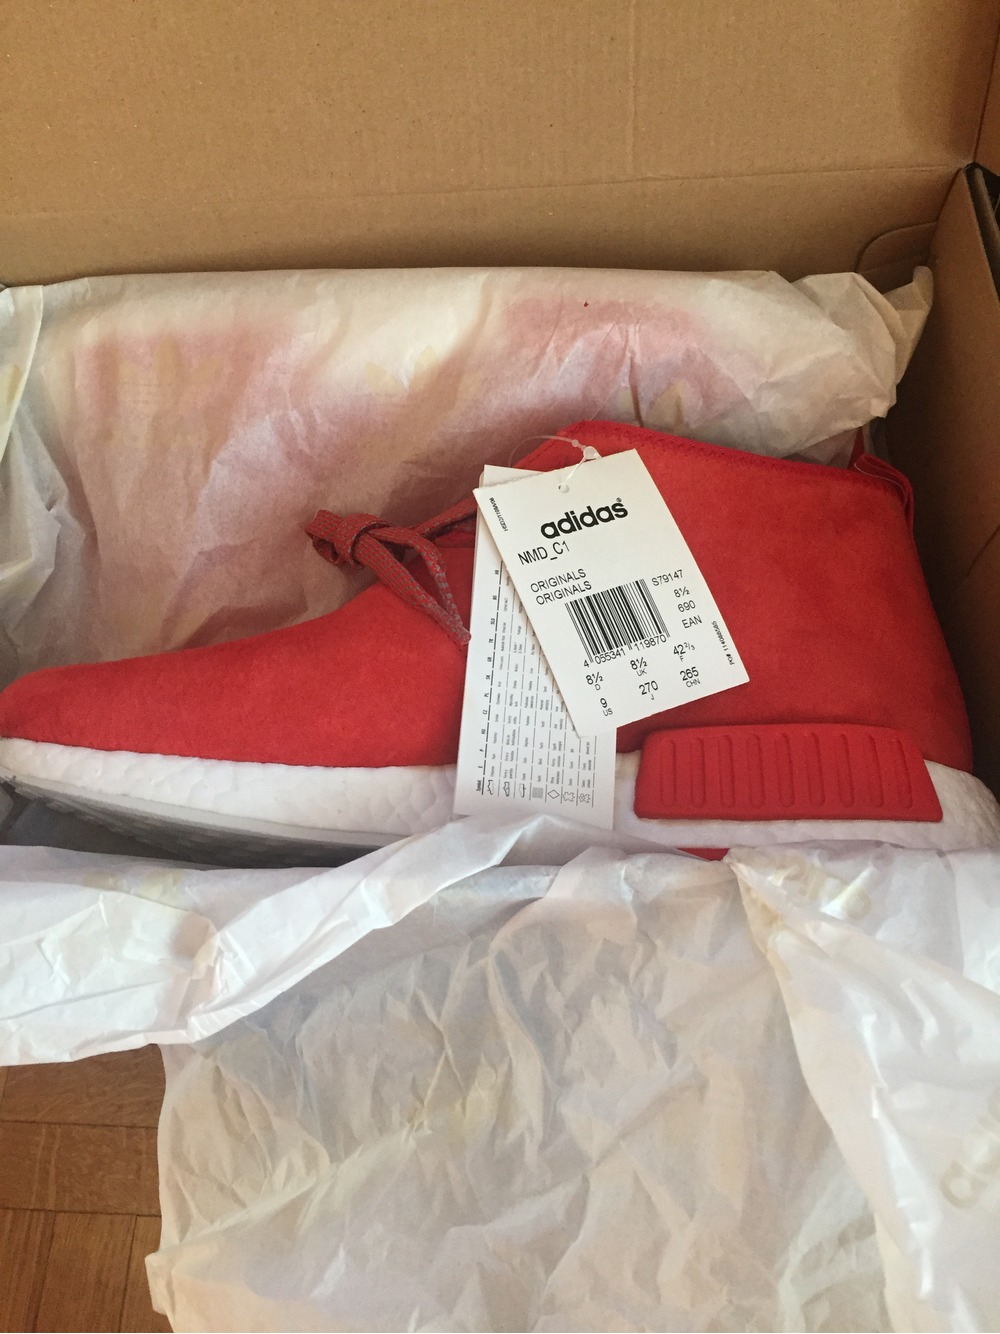 Adidas NMD Chukka OG Red white - photo 1/5